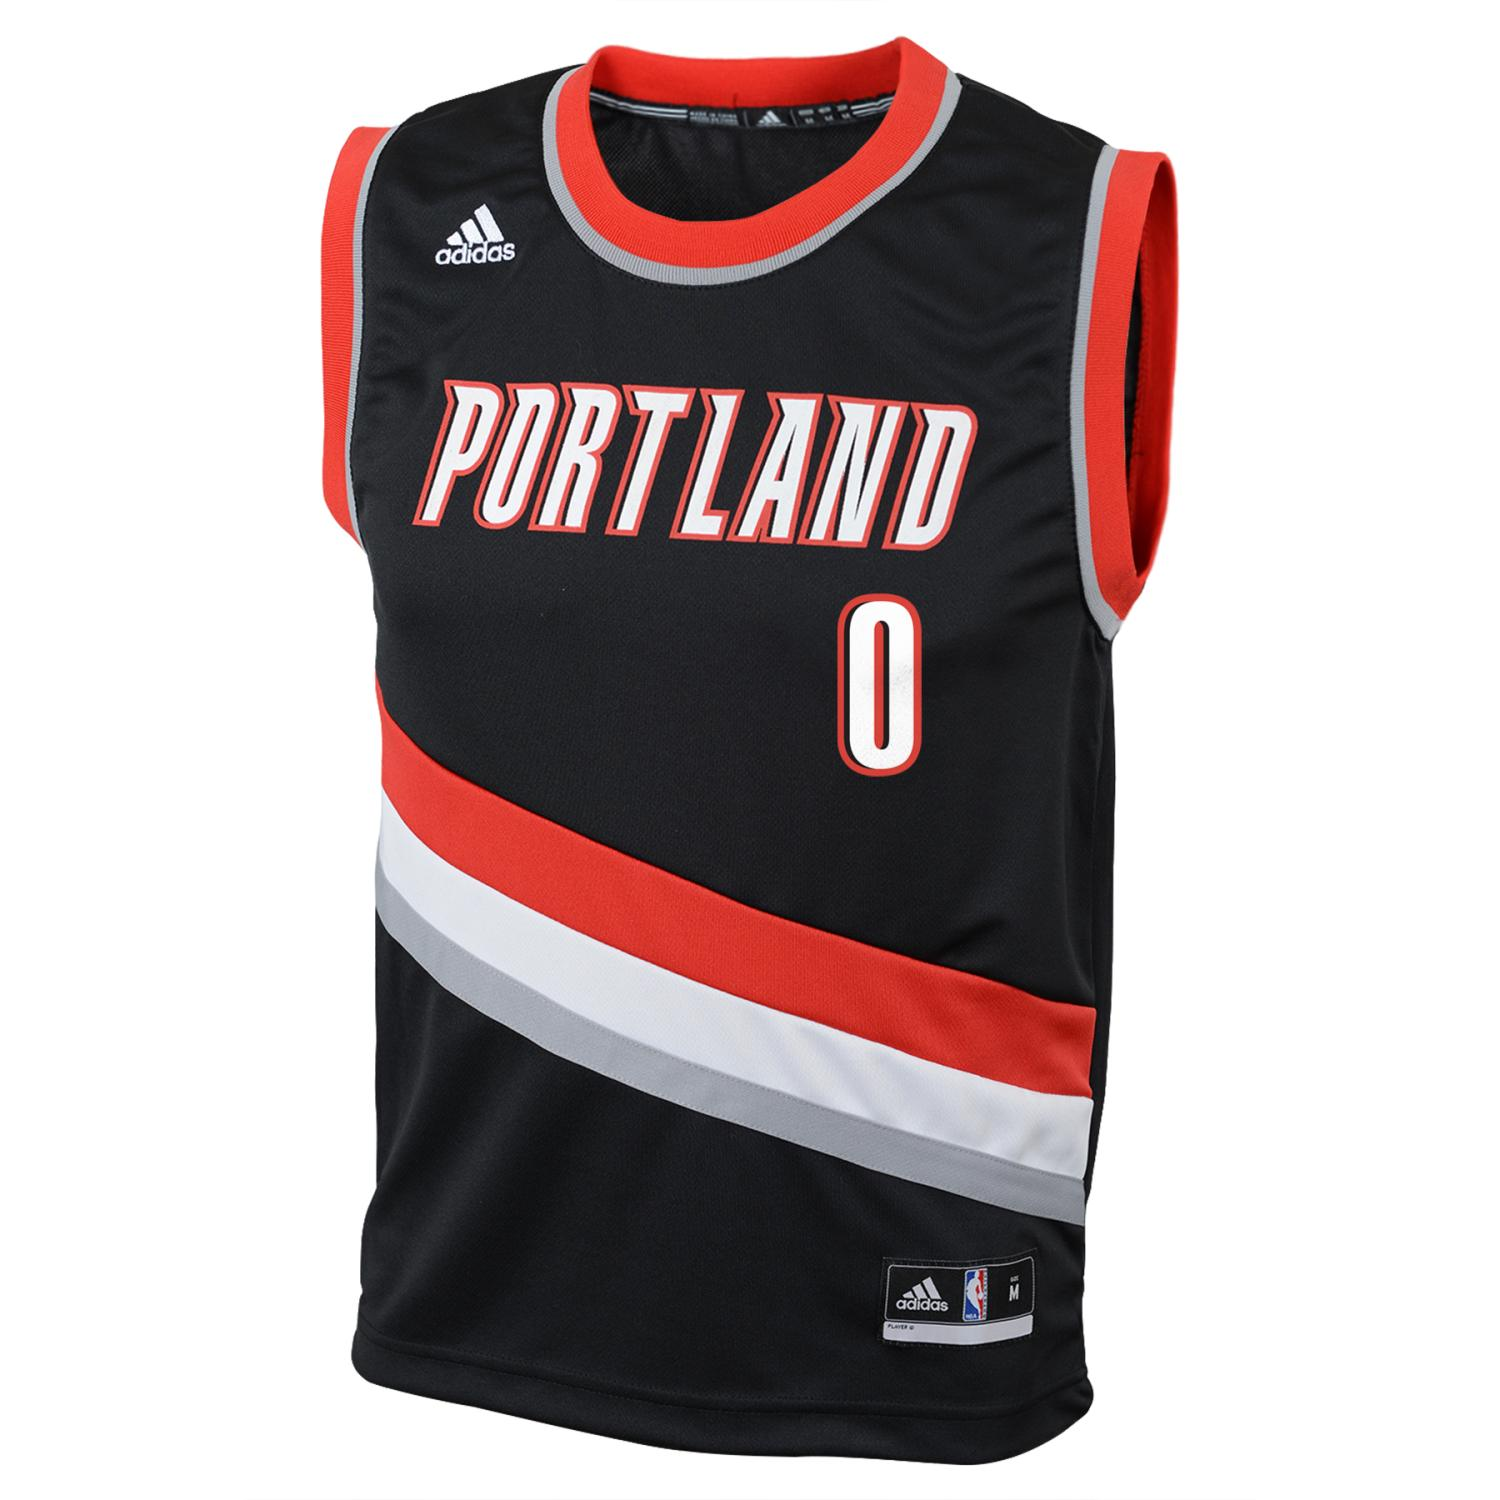 Damian Lillard Portland Trail Blazers Adidas NBA Replica Youth Jersey - Black